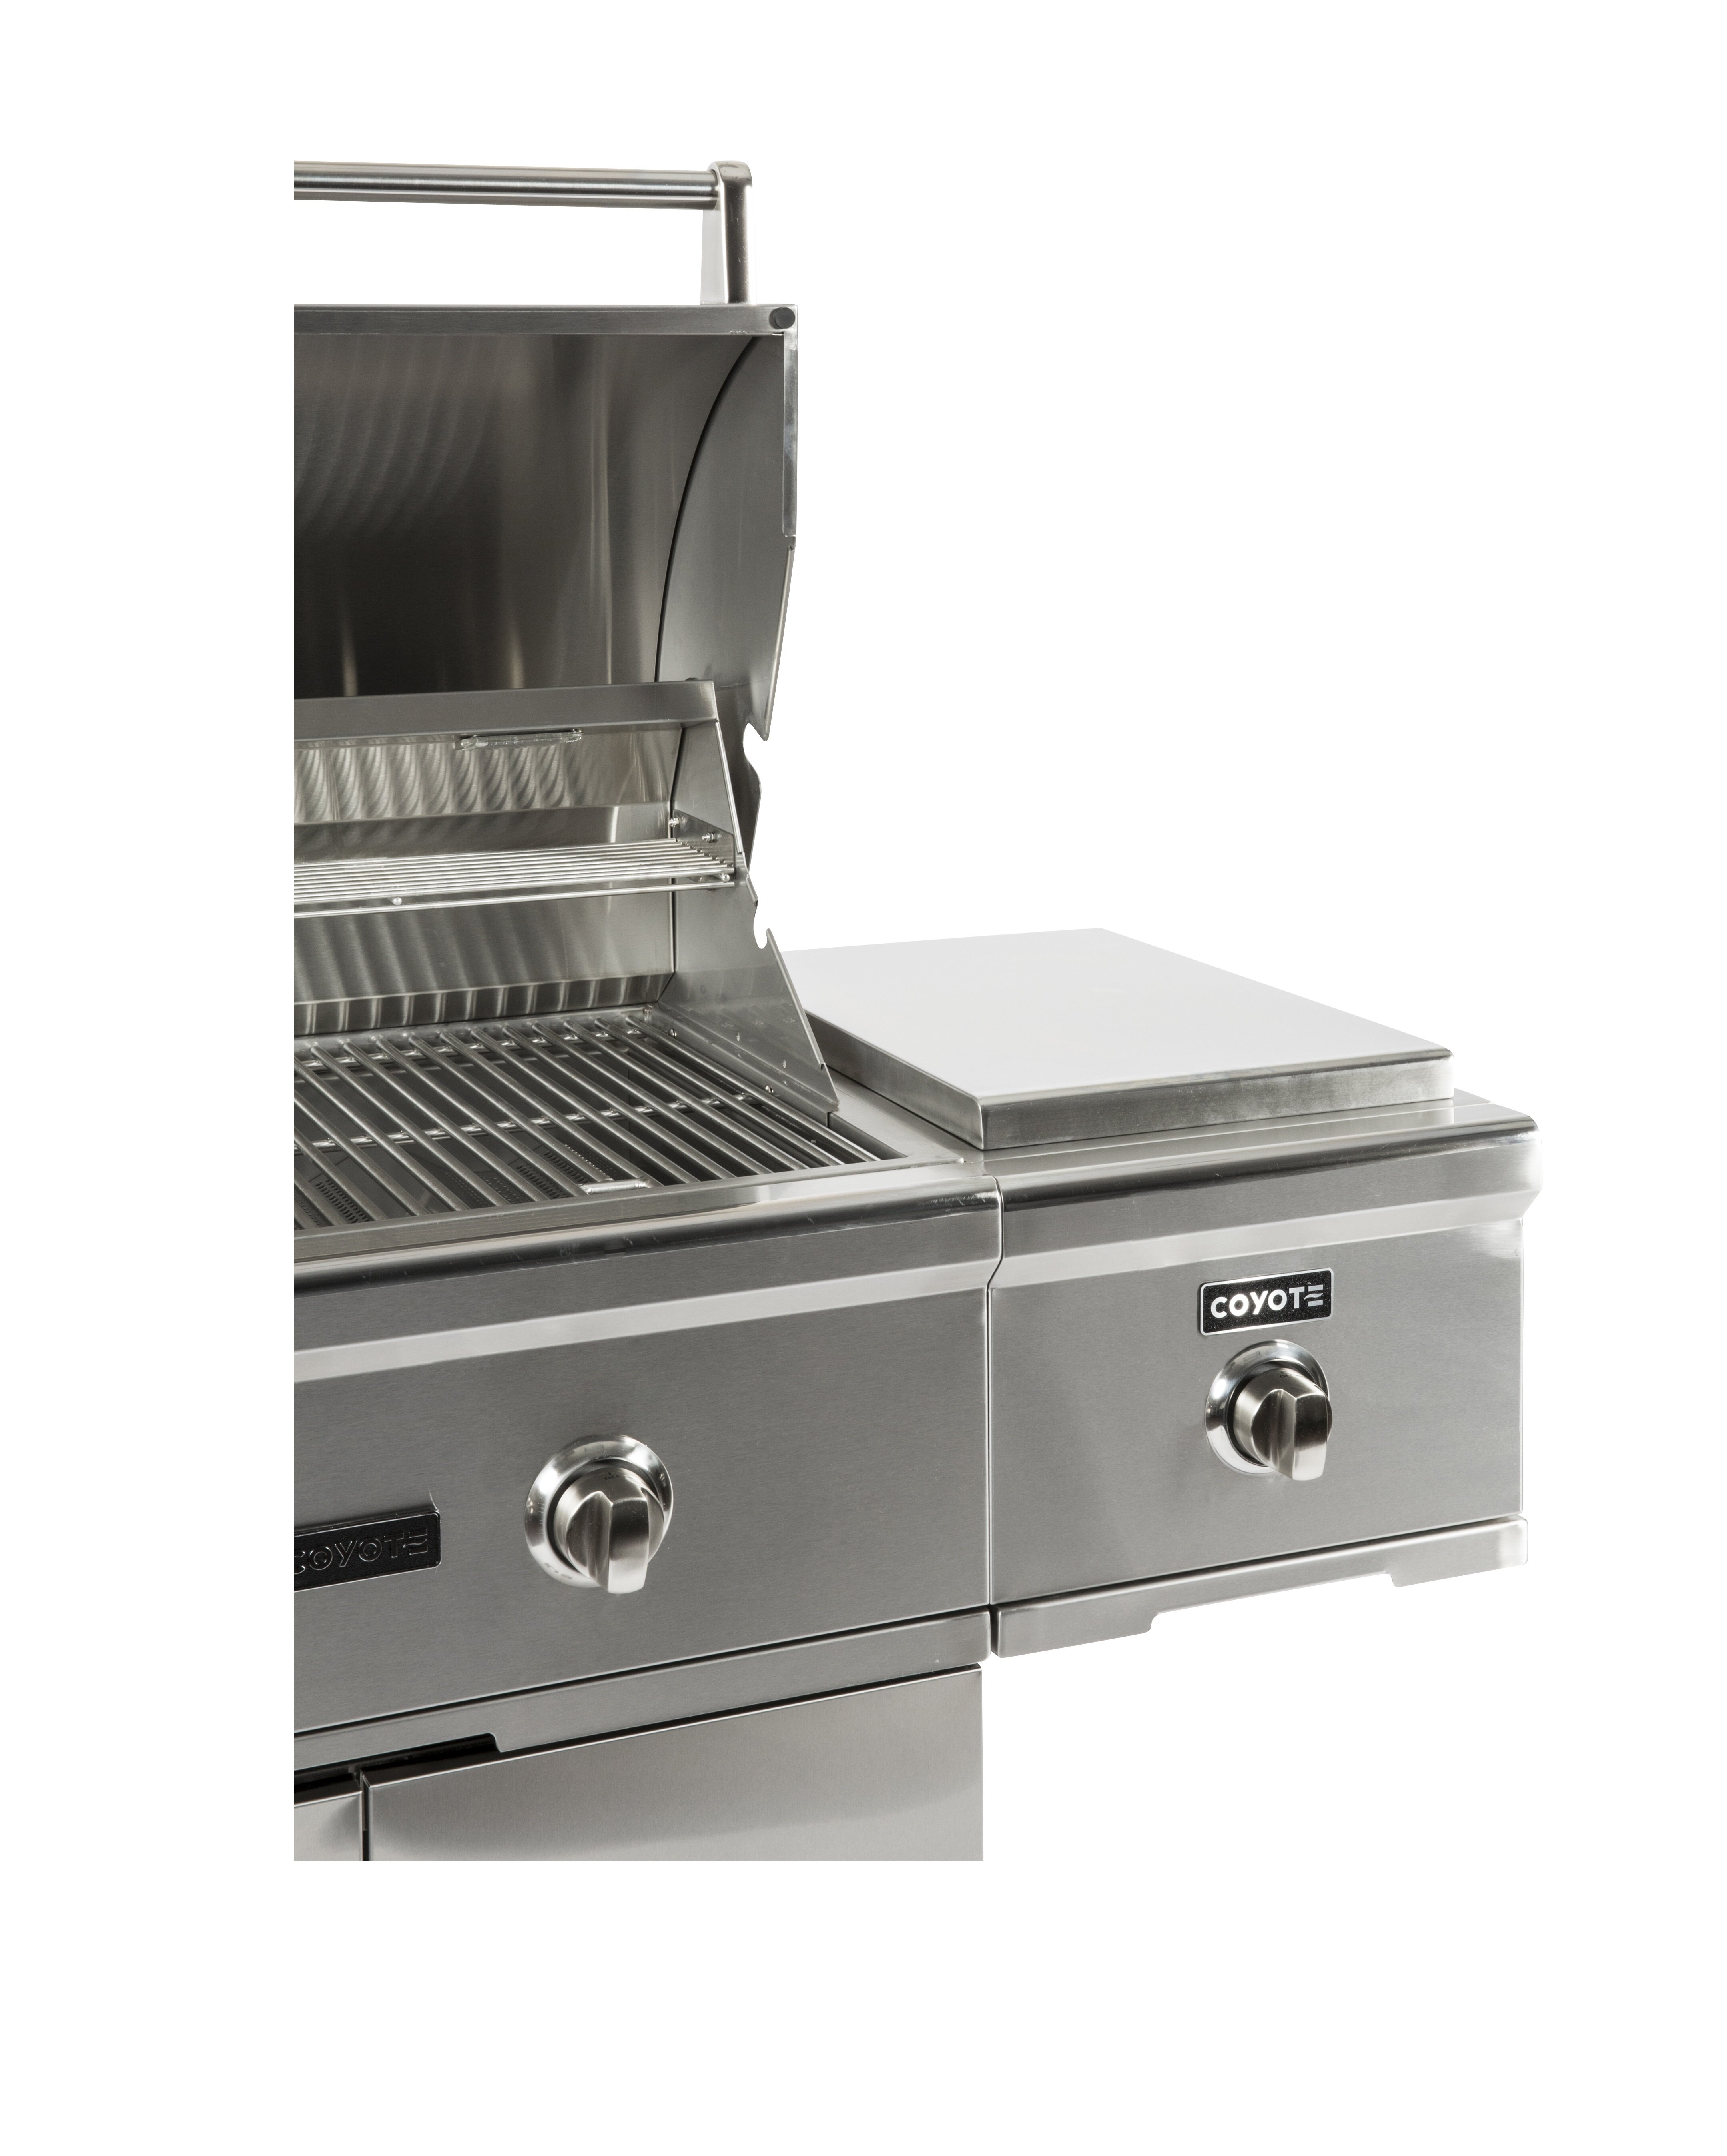 Less Than 20 Inches Built In Grills You Ll Love In 2021 Wayfair